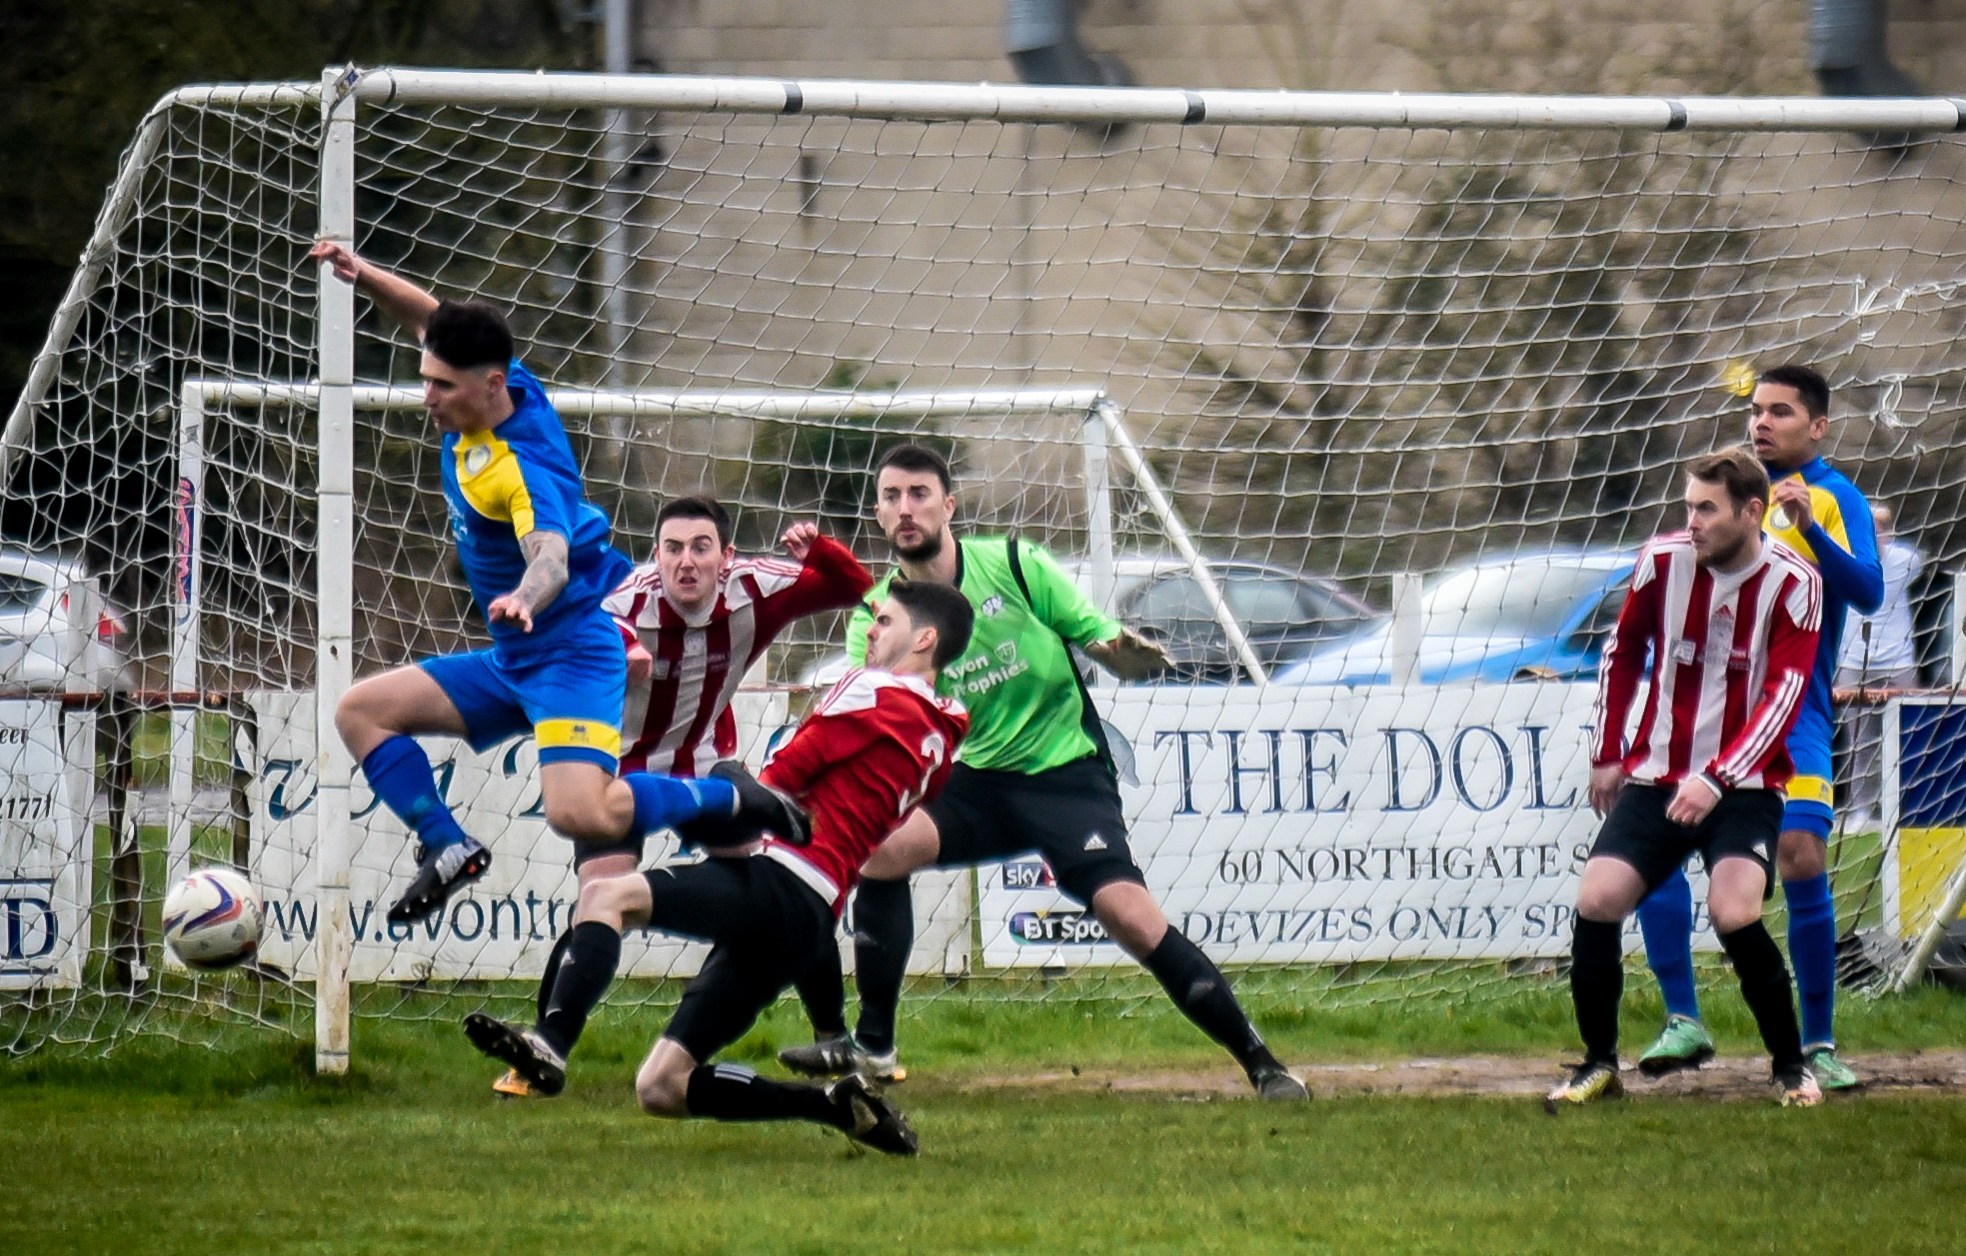 Royal Wootton Bassett Town Development (blue) attempt to flick the ball goalwards during their narrow 2-1 defeat away at Devizes Town Reserves in the Wiltshire League on Saturday. PICTURE: GLENN PHILLIPS